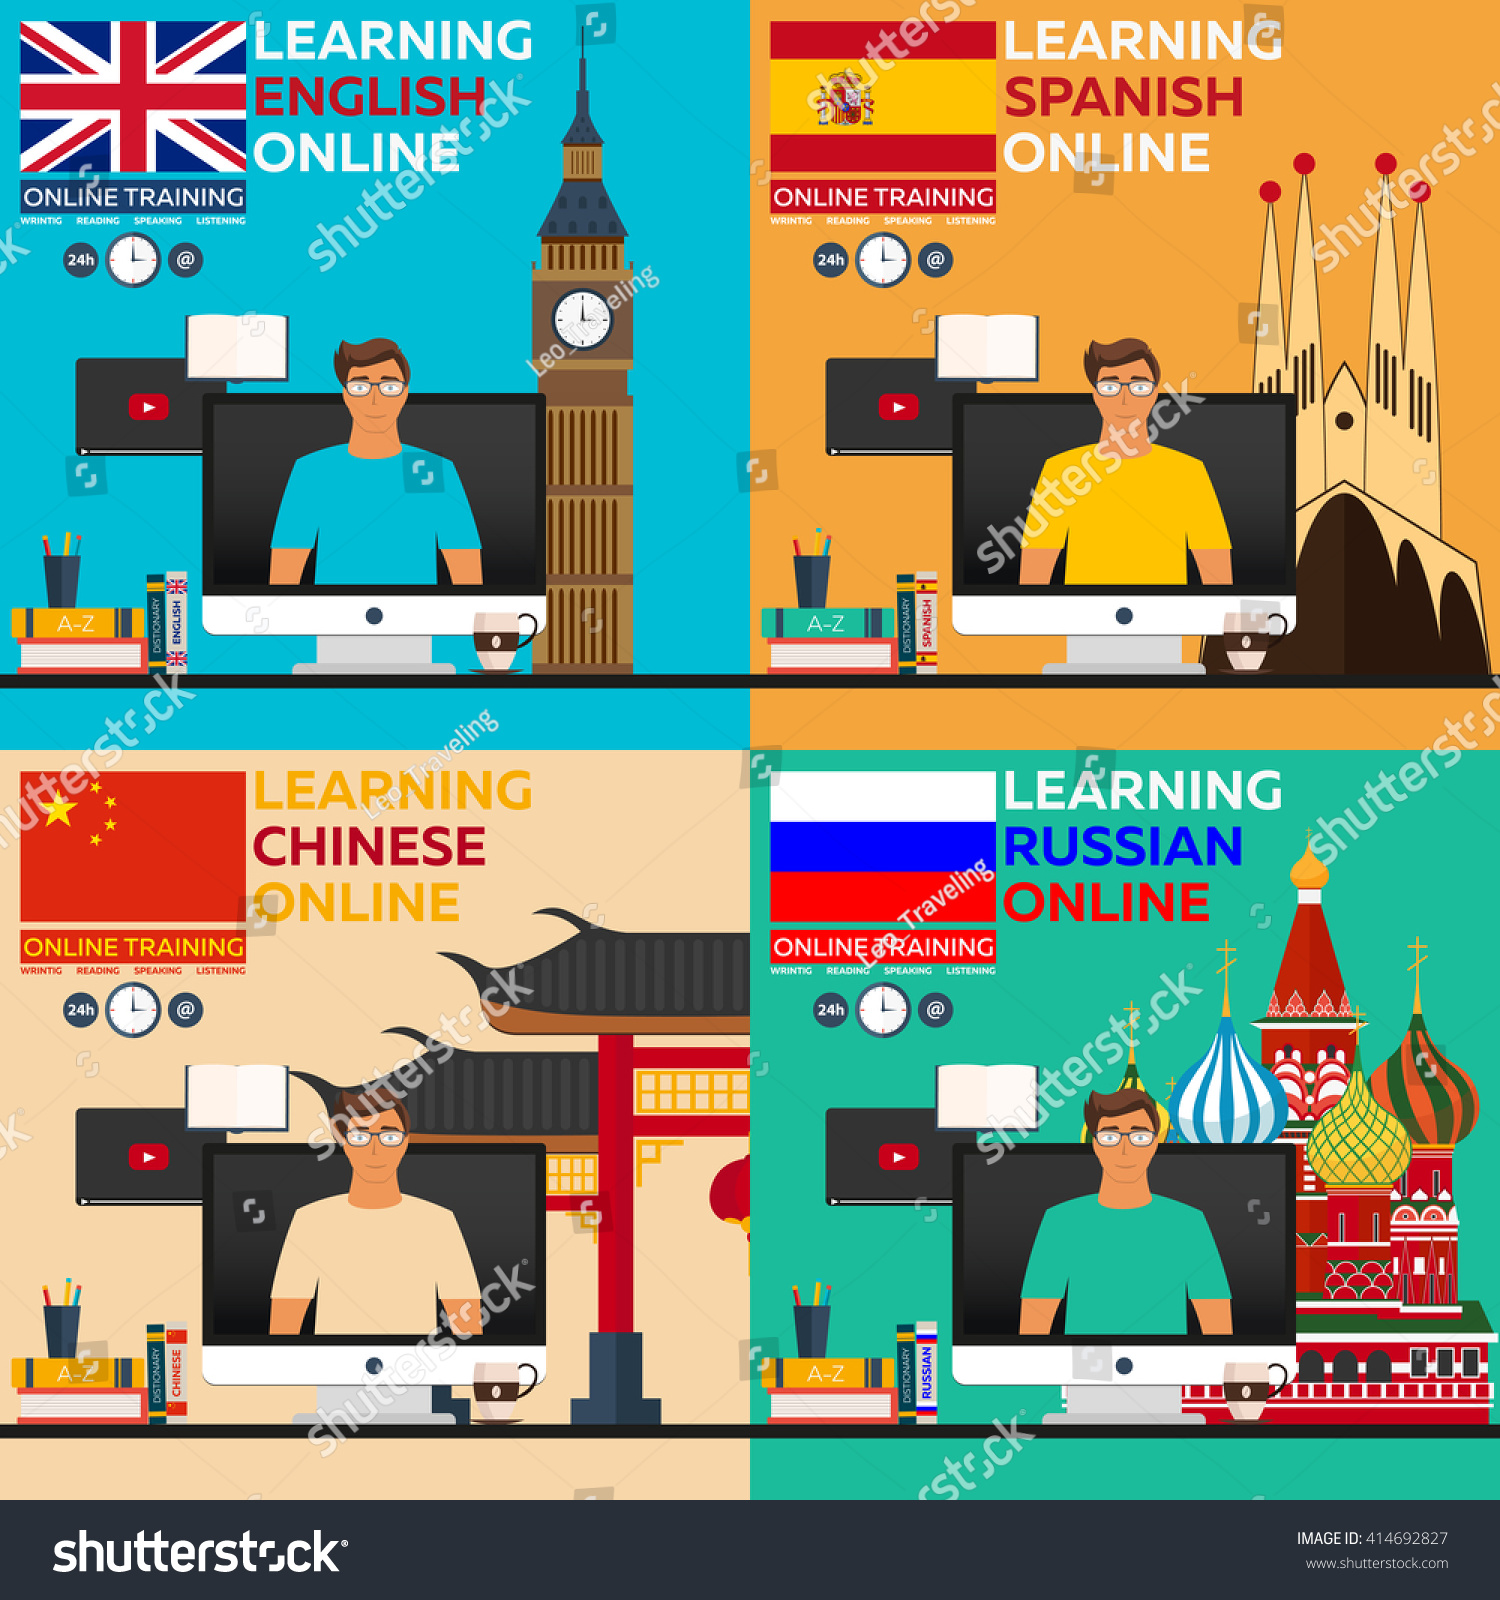 learning language online russian english spanish stock vector